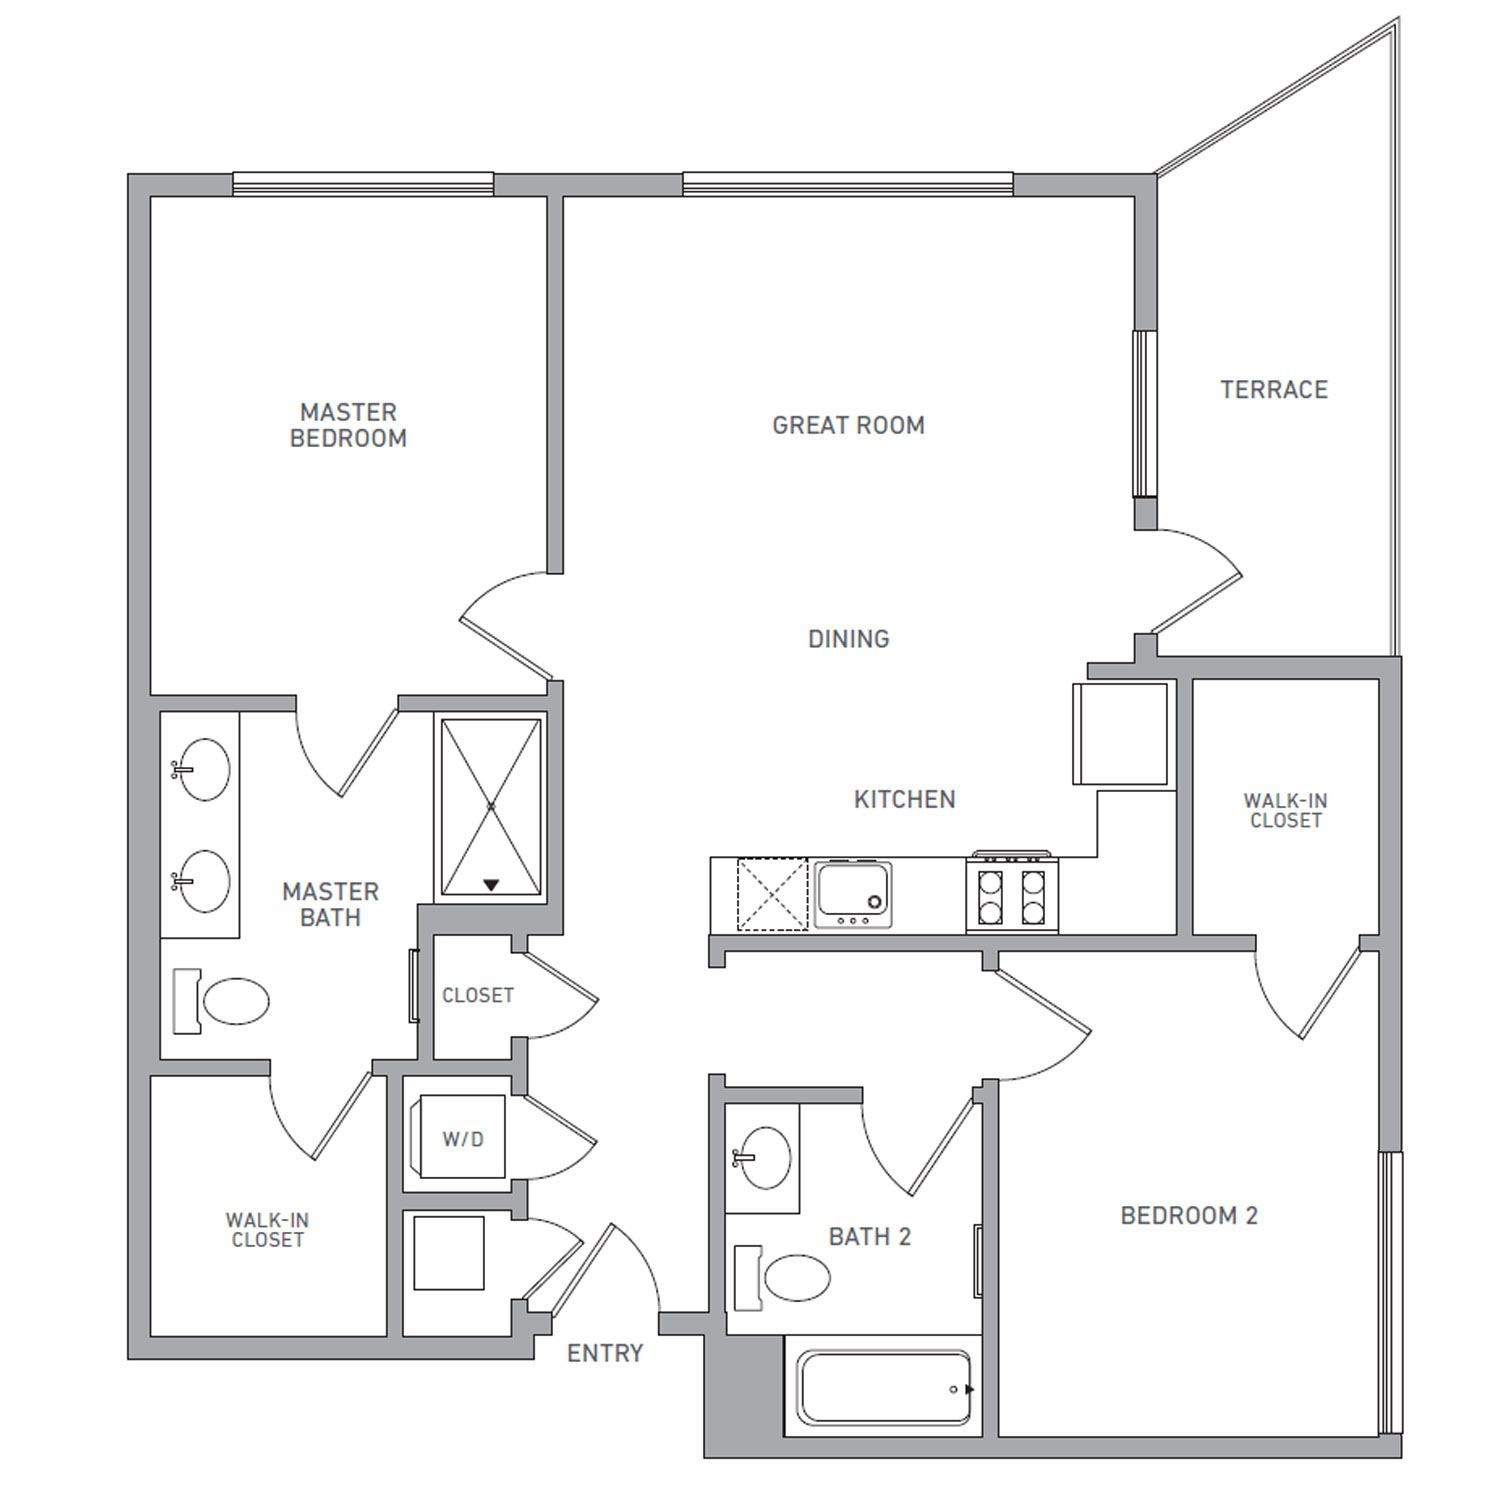 B Four floor plan diagram. Two bedrooms, two bathrooms, an open kitchen and living area, a terrace, and a washer dryer.